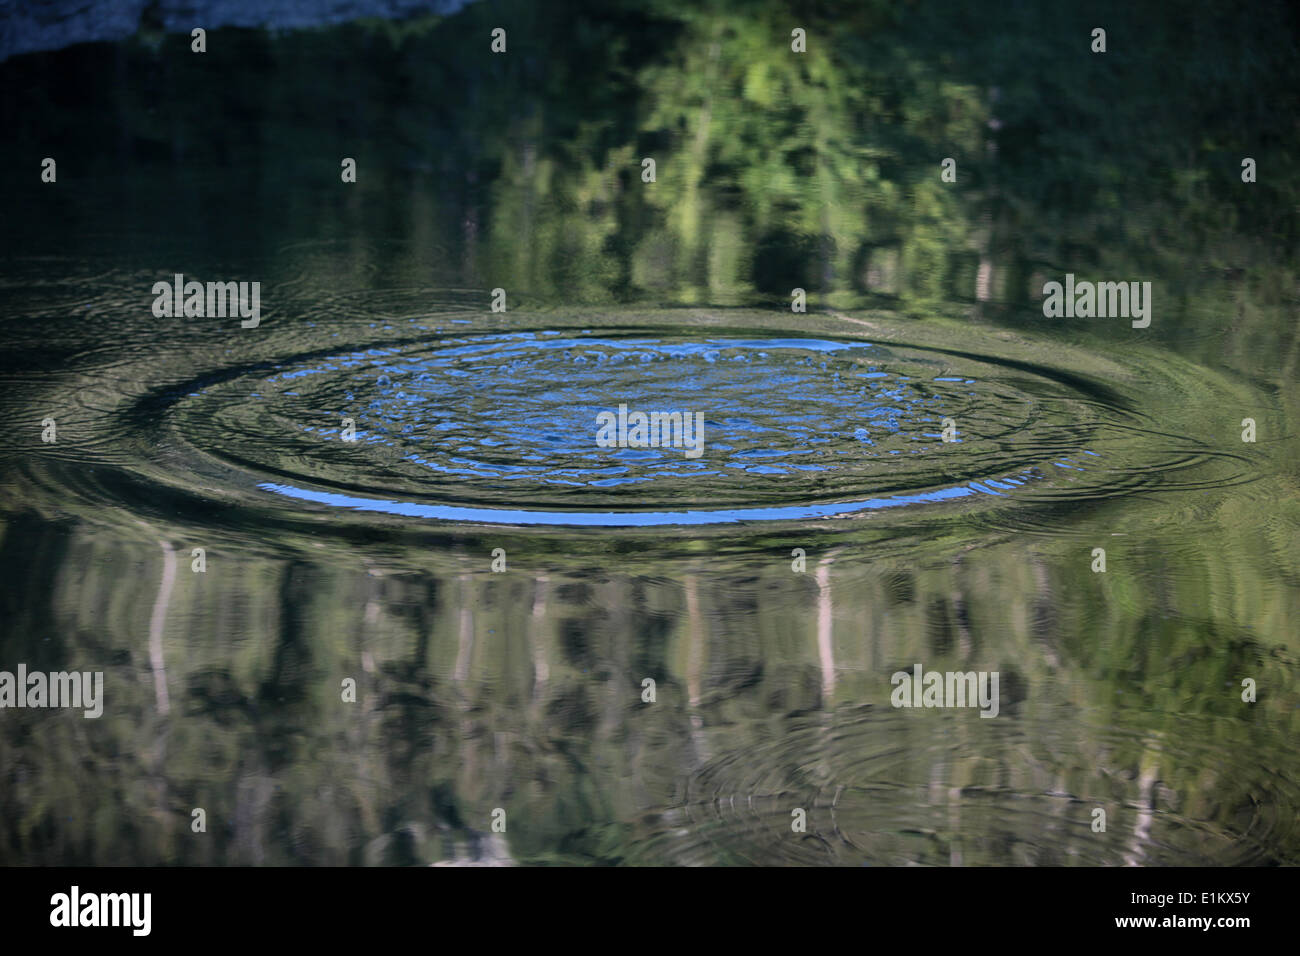 Ripples on a lake - Stock Image